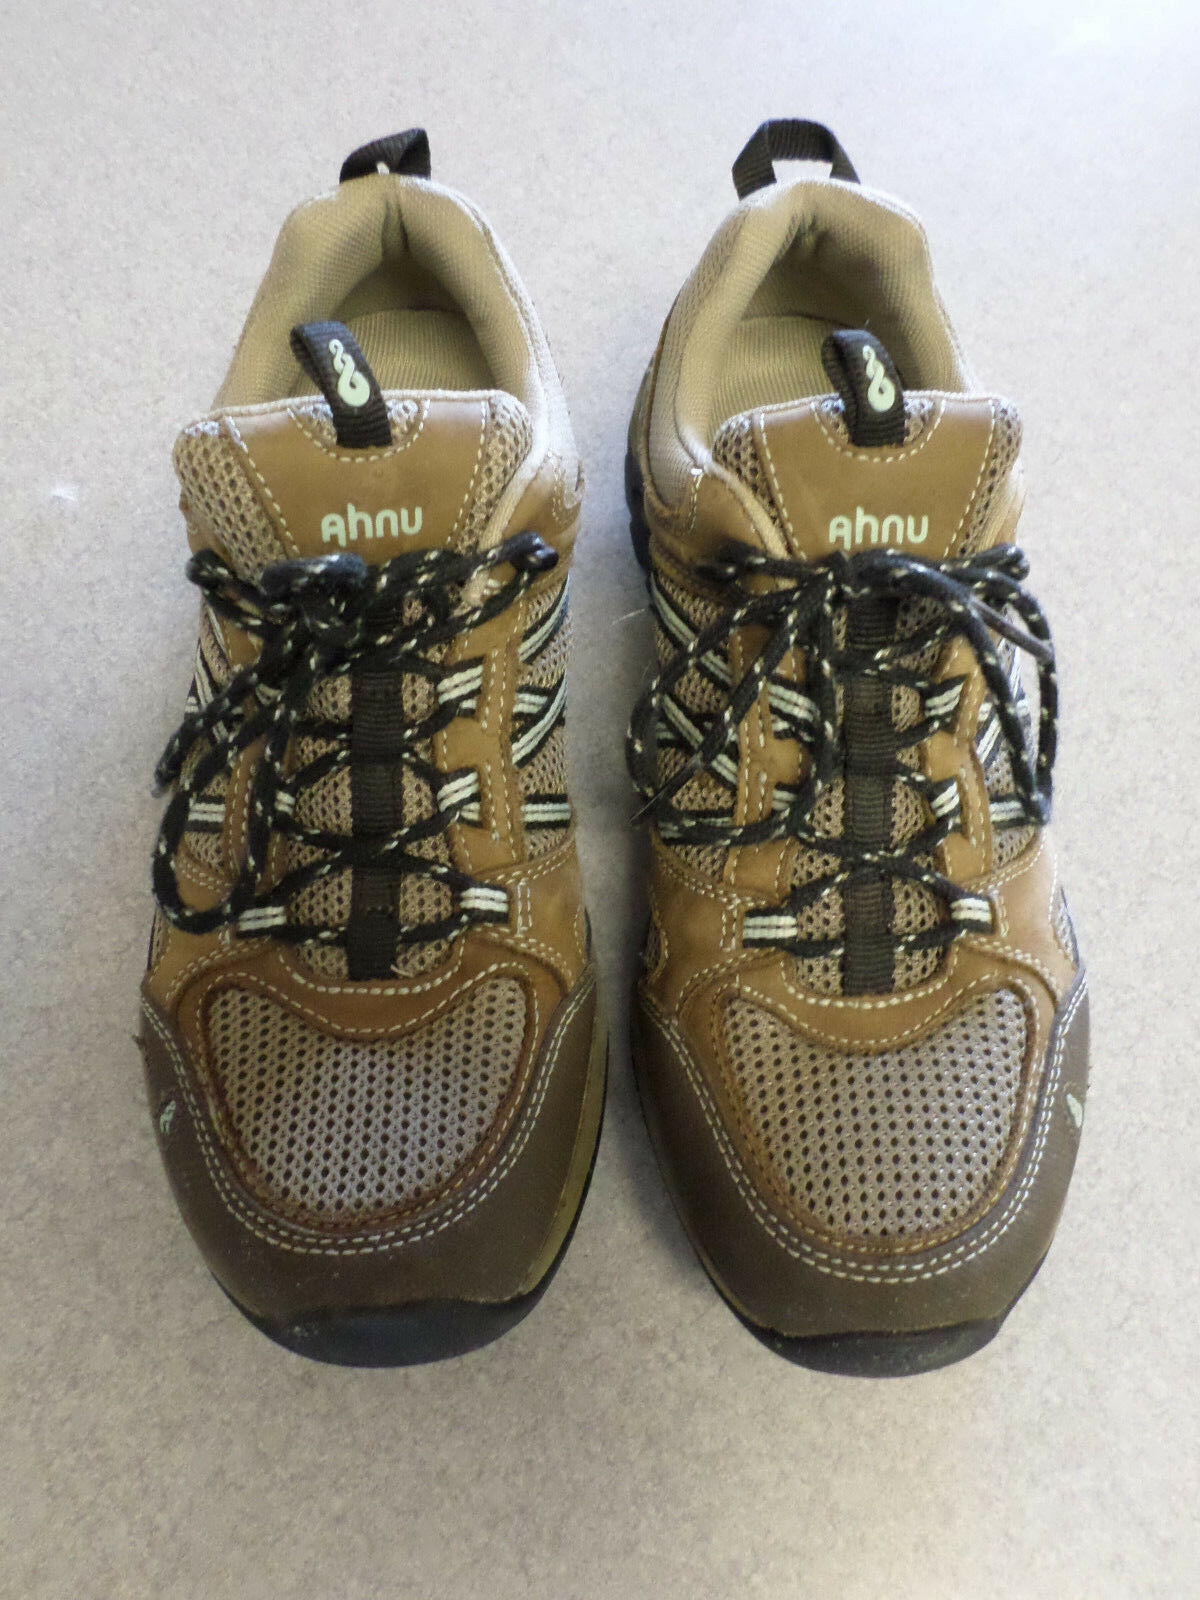 Ahnu brown leather and mesh hiking shoes Women's 8.5 (eur 39.5)